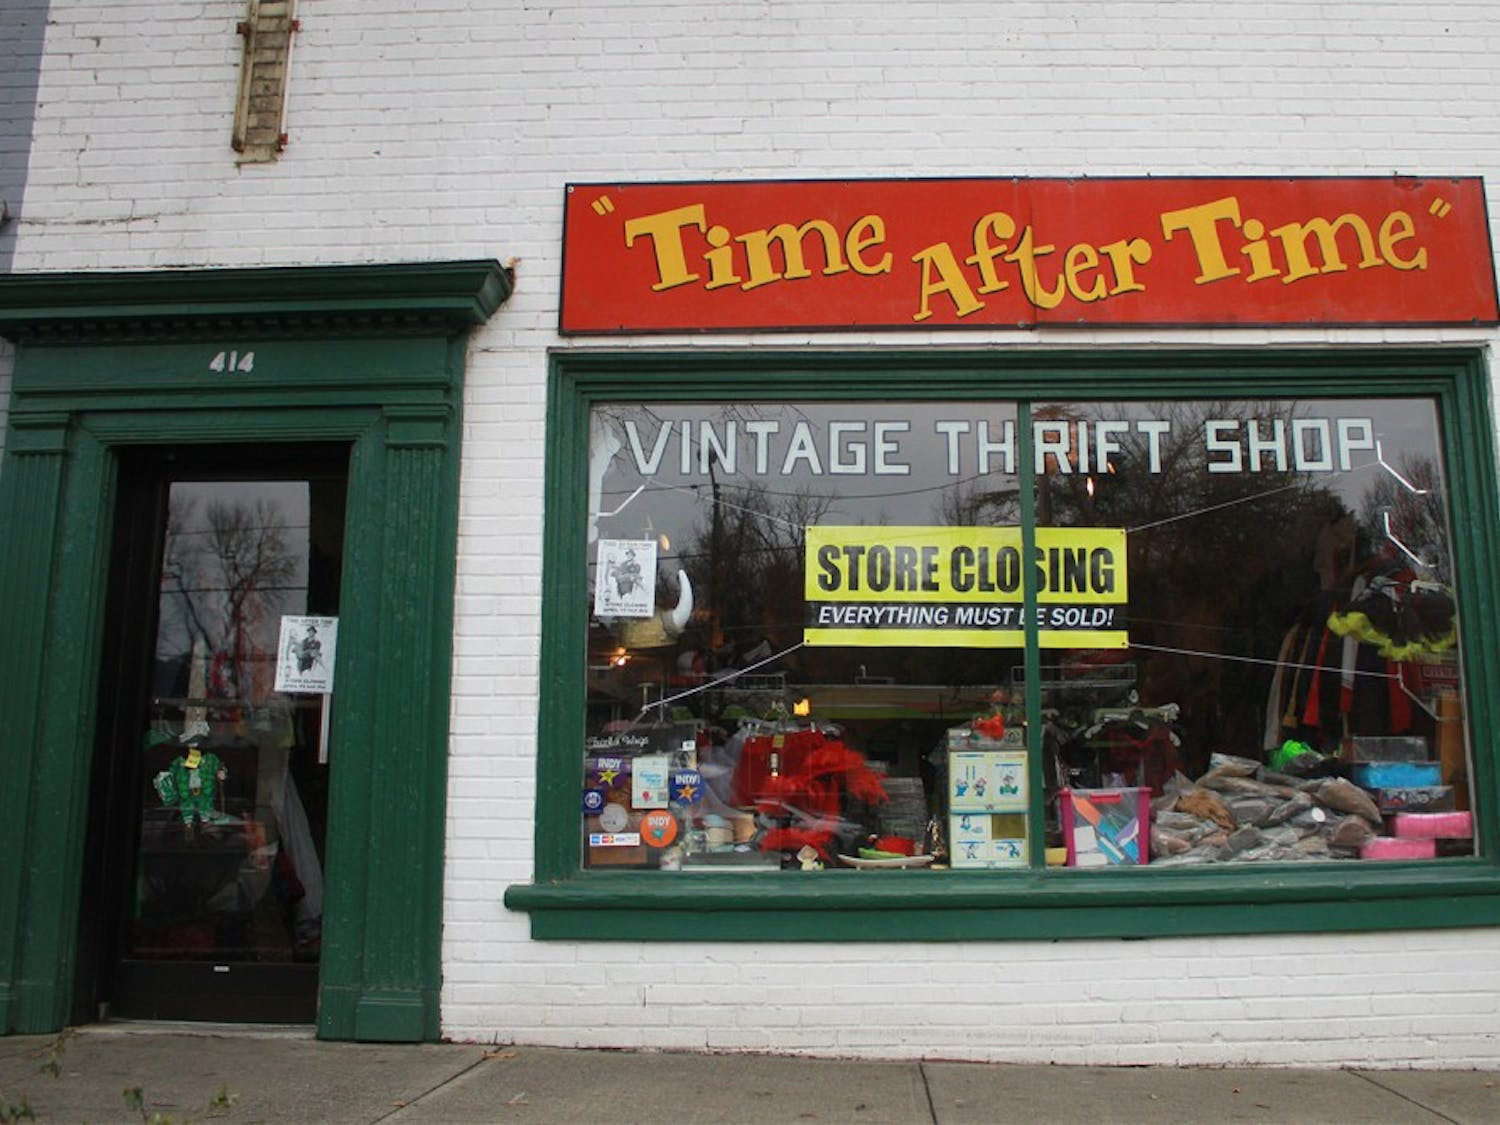 Vintage clothing store Time After Time is closing. Ann Jackson, co-owner, said the decision to close was made for personal, not business, reasons.